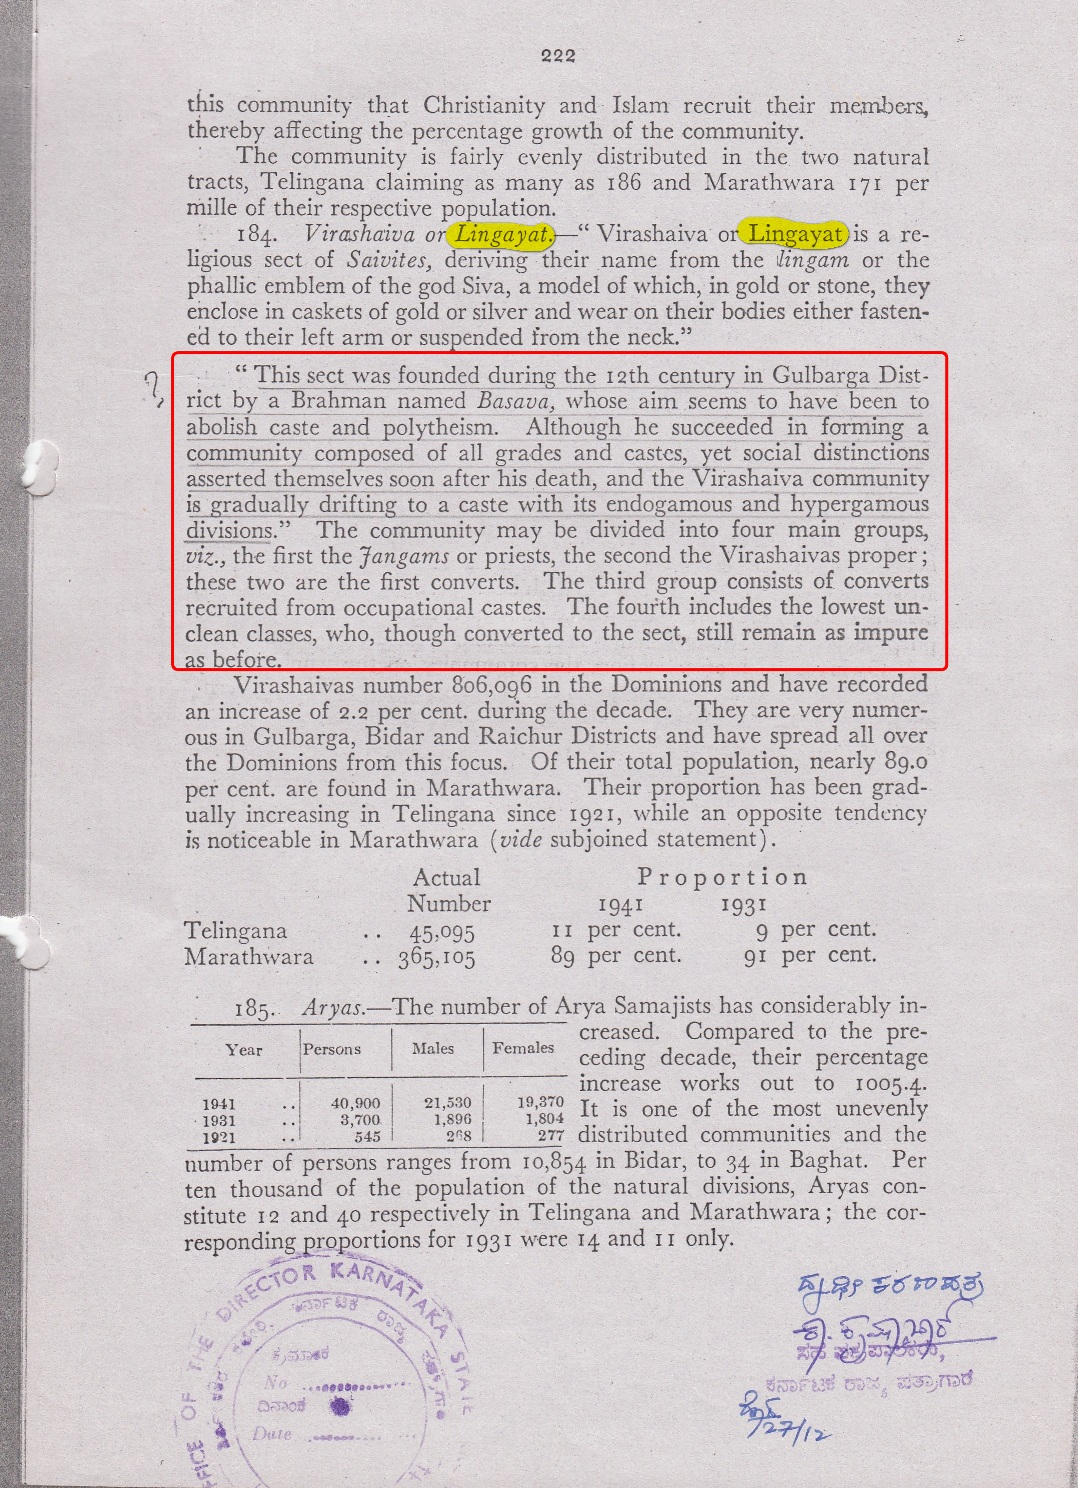 Census of India 1941 Hyderabad State Report_2